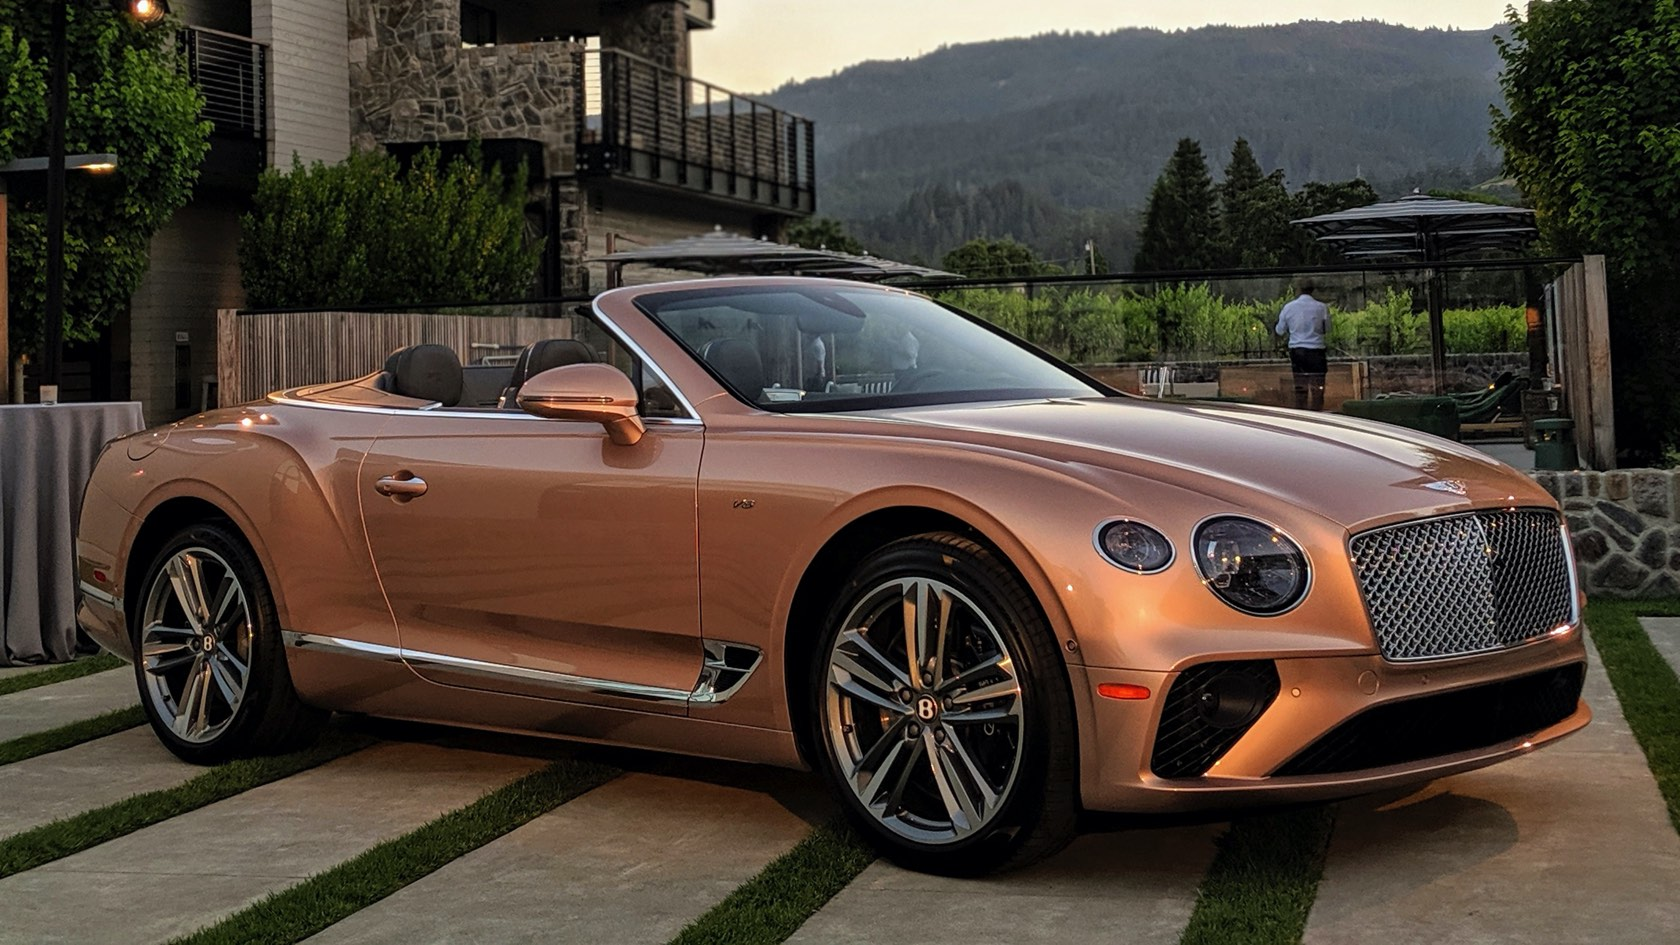 2020 Bentley Continental Gt V8 First Drive Review When Compromise Is Unforgivable Slashgear